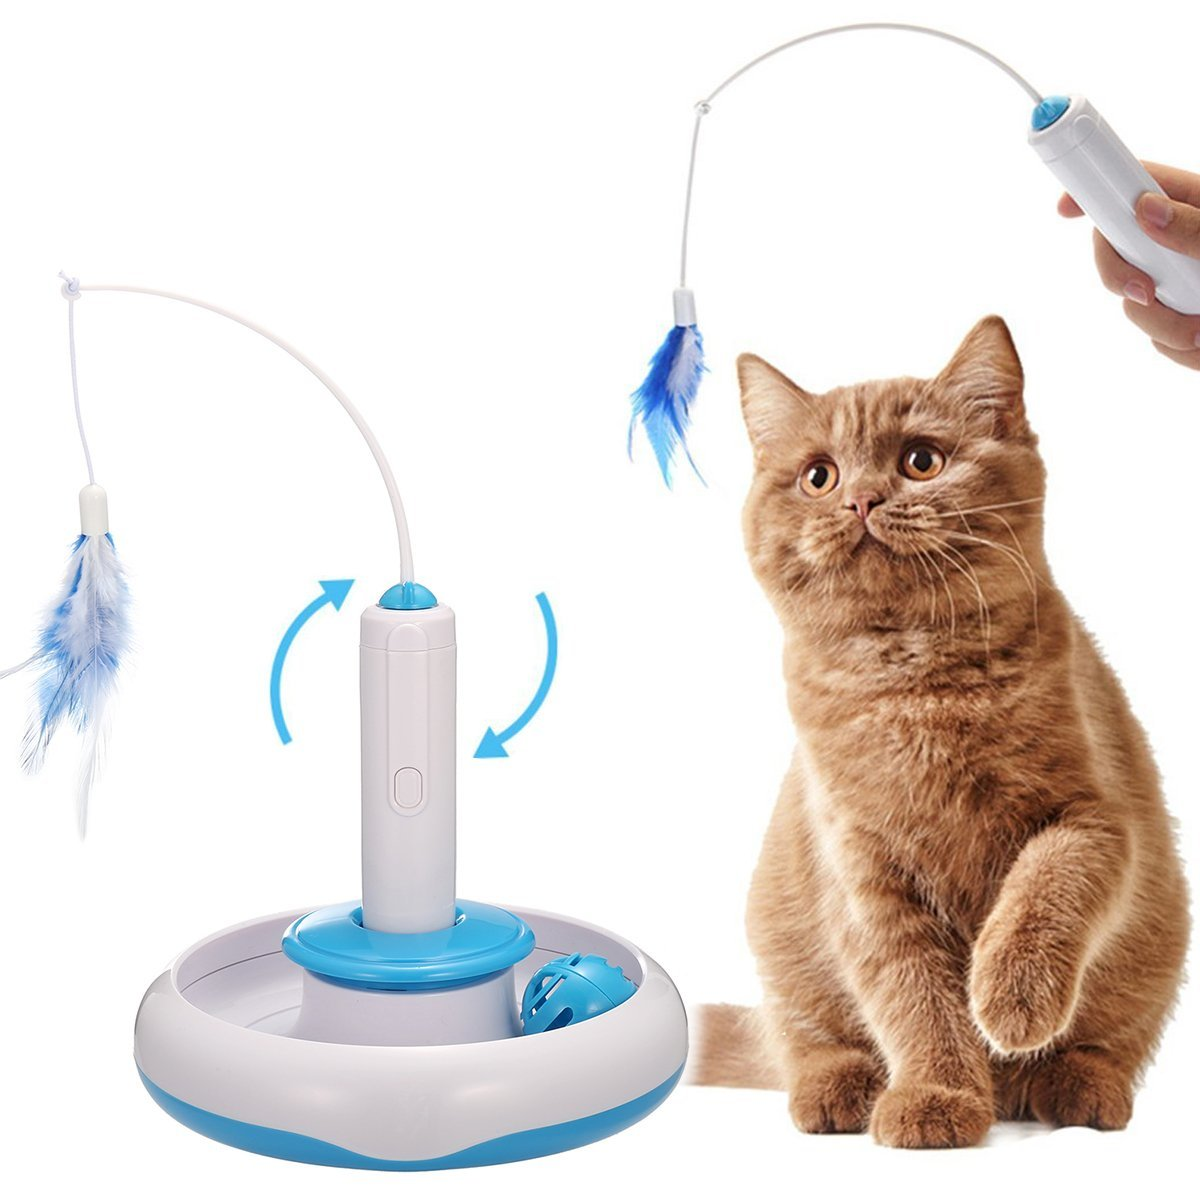 cat toy that moves